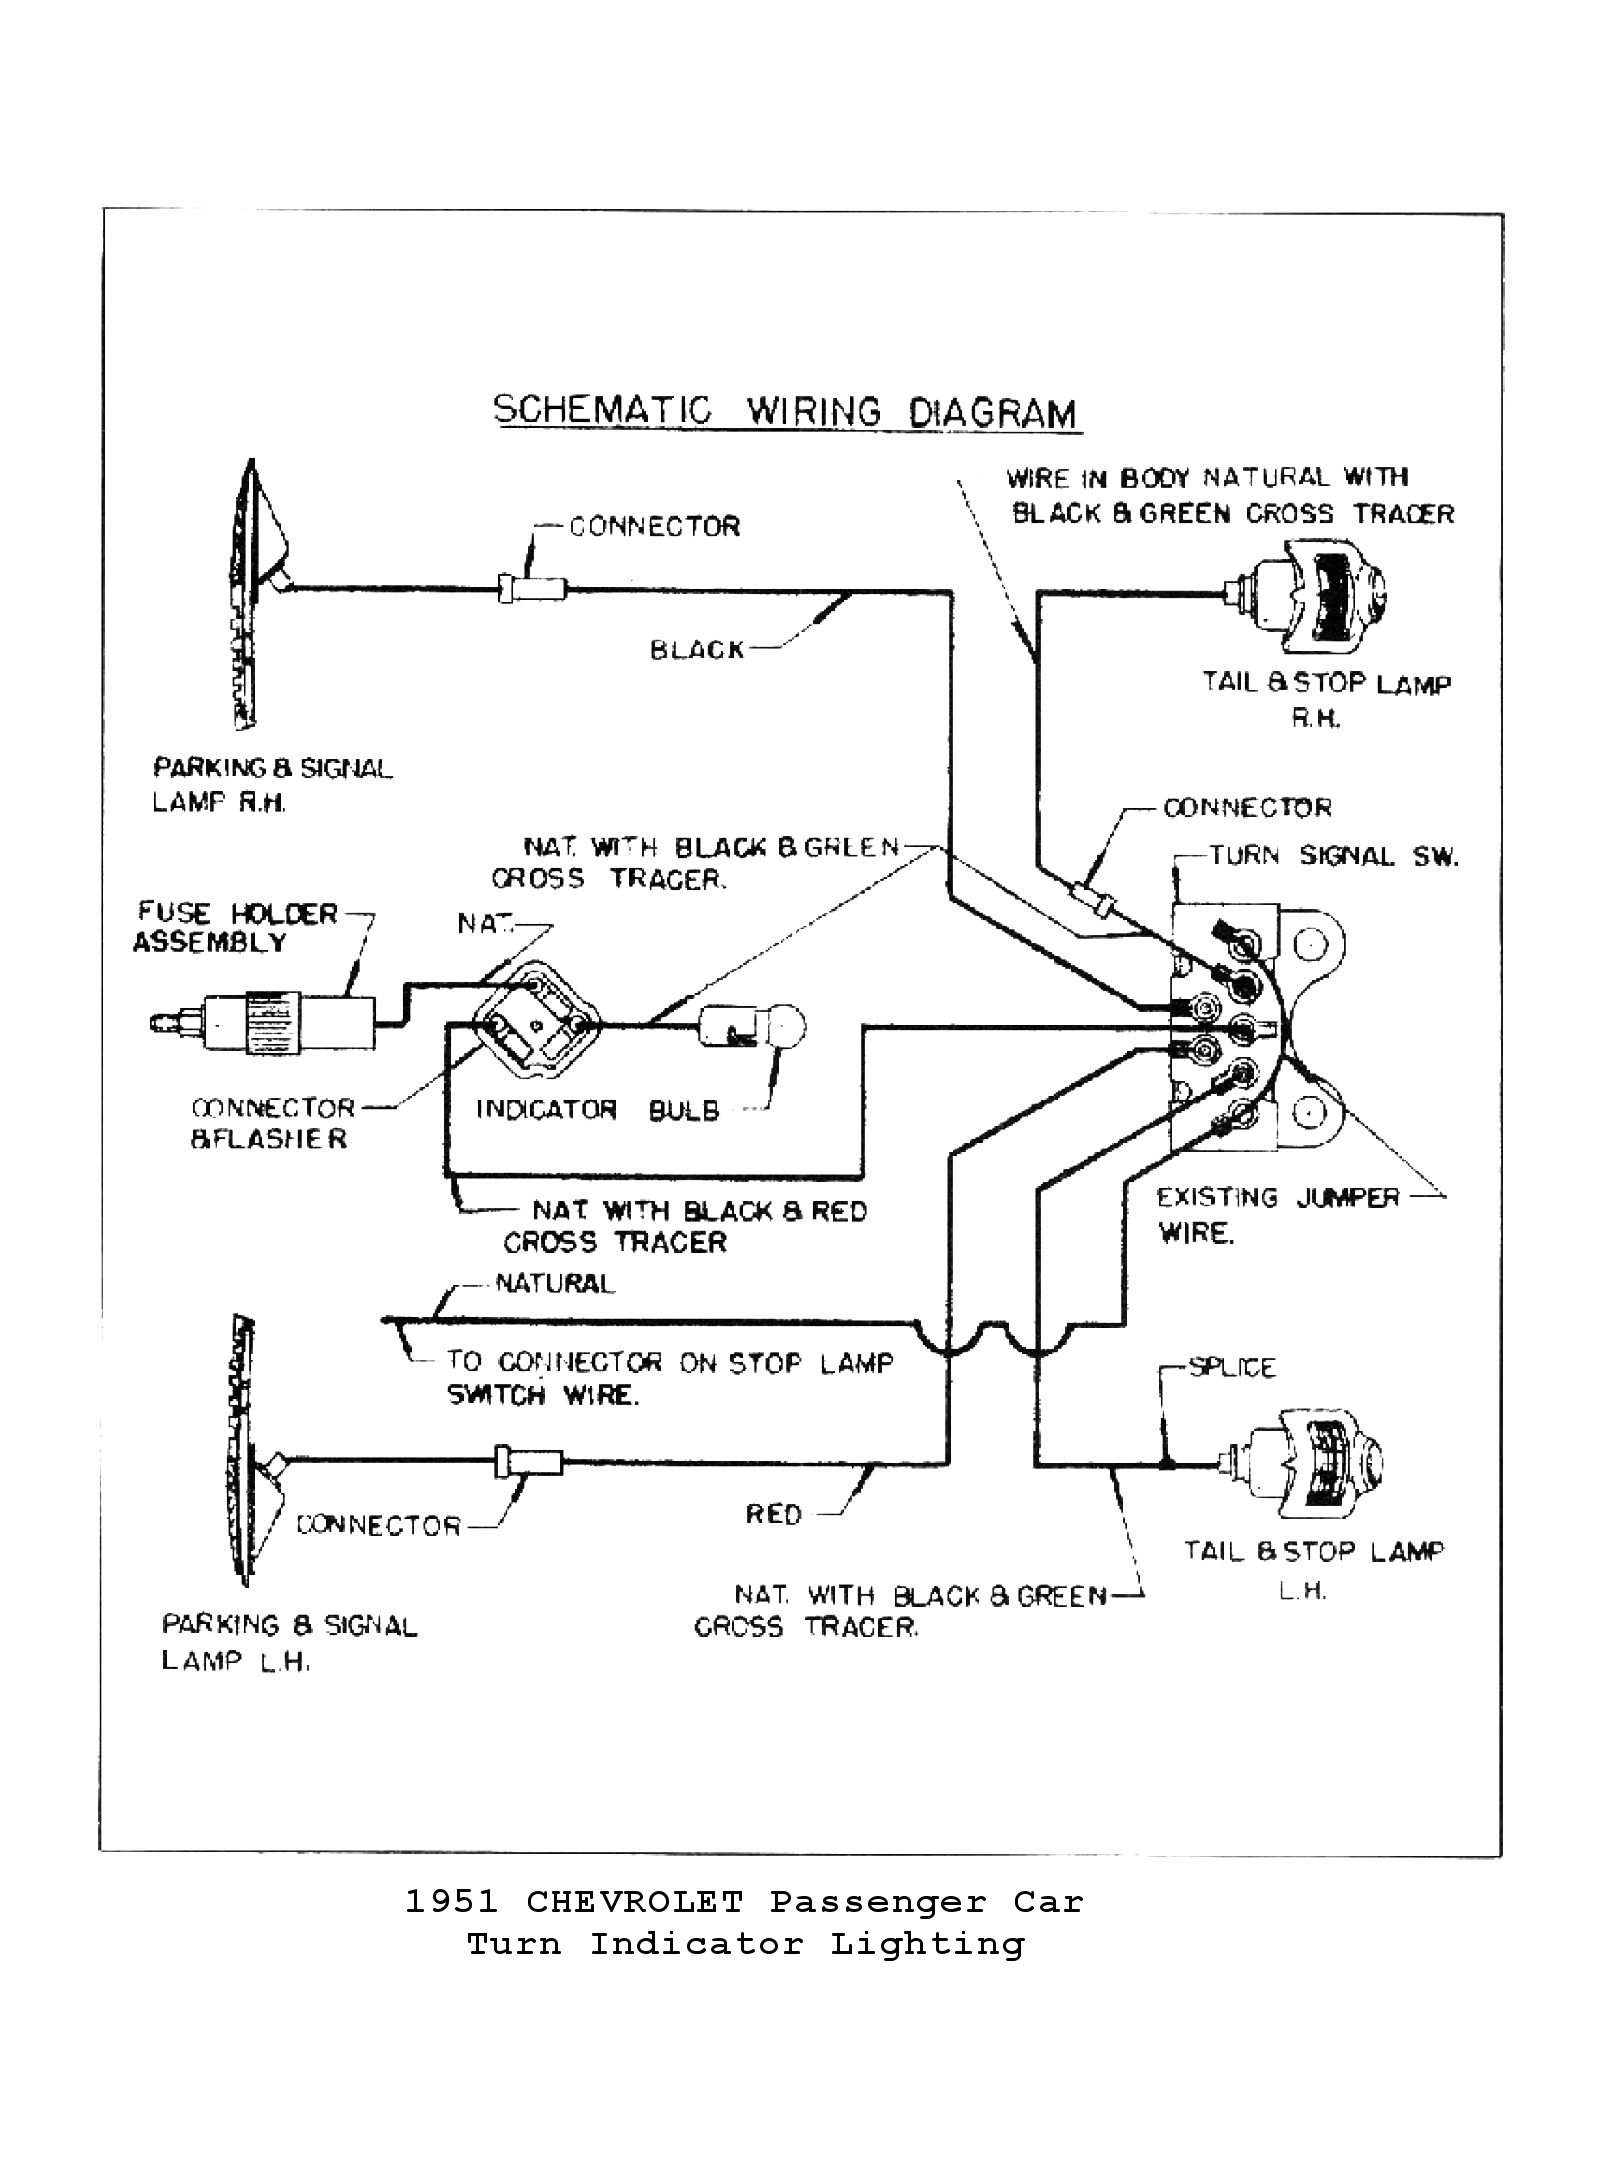 Headlights On Van Wiring Diagram Get Free Image About Best268 Circuit Board Maintenance Clipon Magnifying Glass Alex Nld 1950 Gmc Schematic Diagrams U2022 Rh Arcomics Co